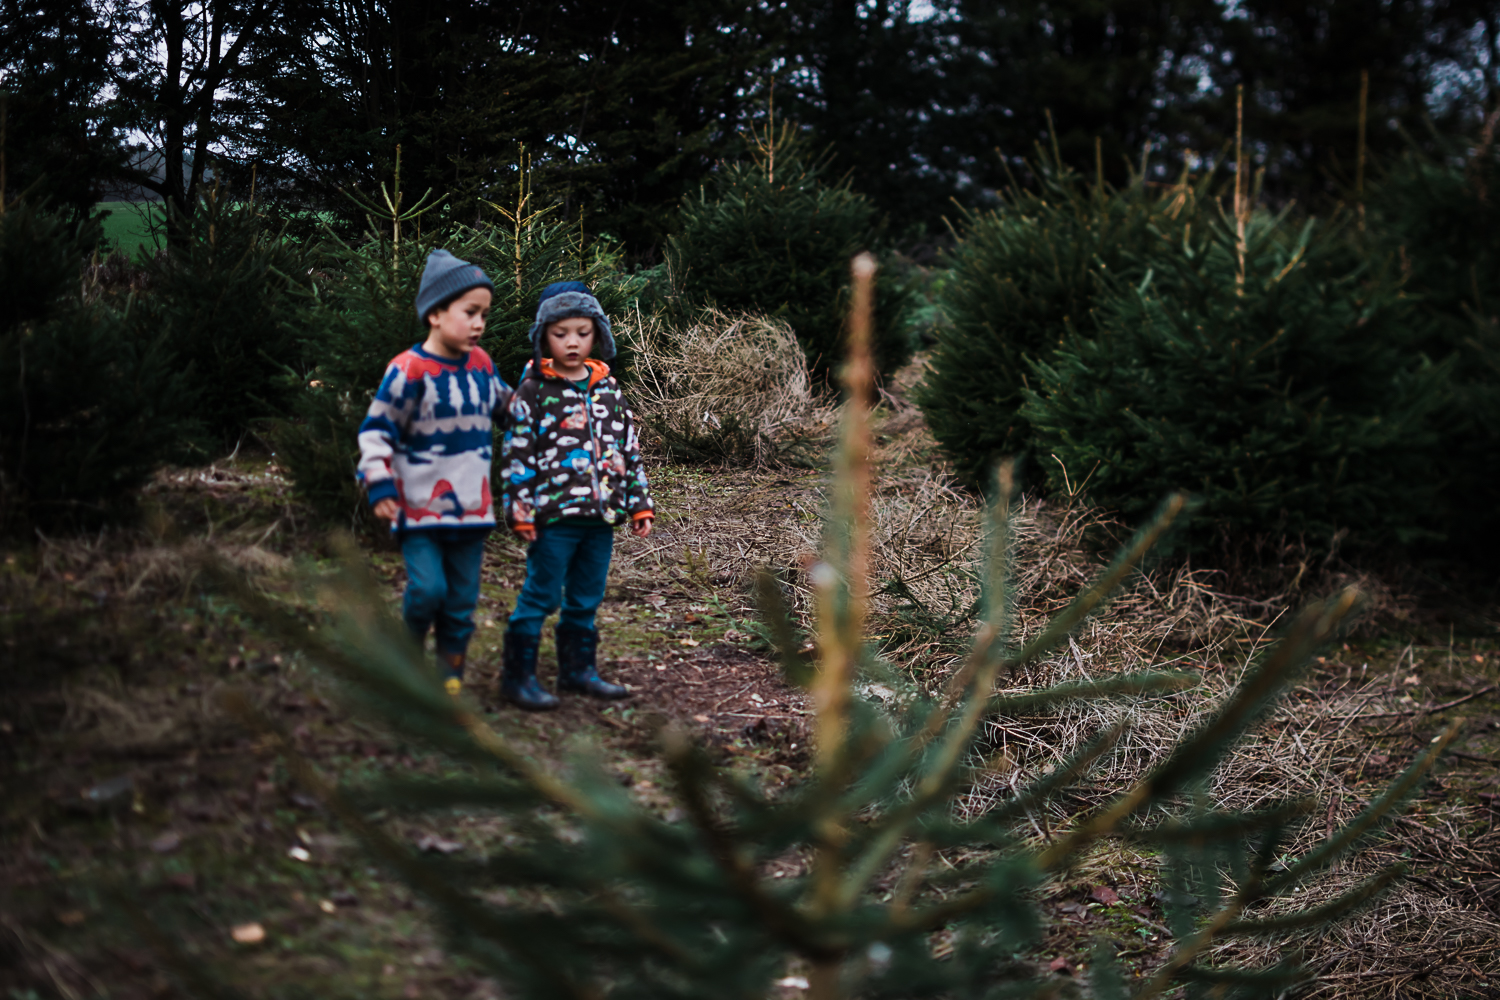 Family storytelling photography at Christmas - Documentary Photographer Diana Hagues